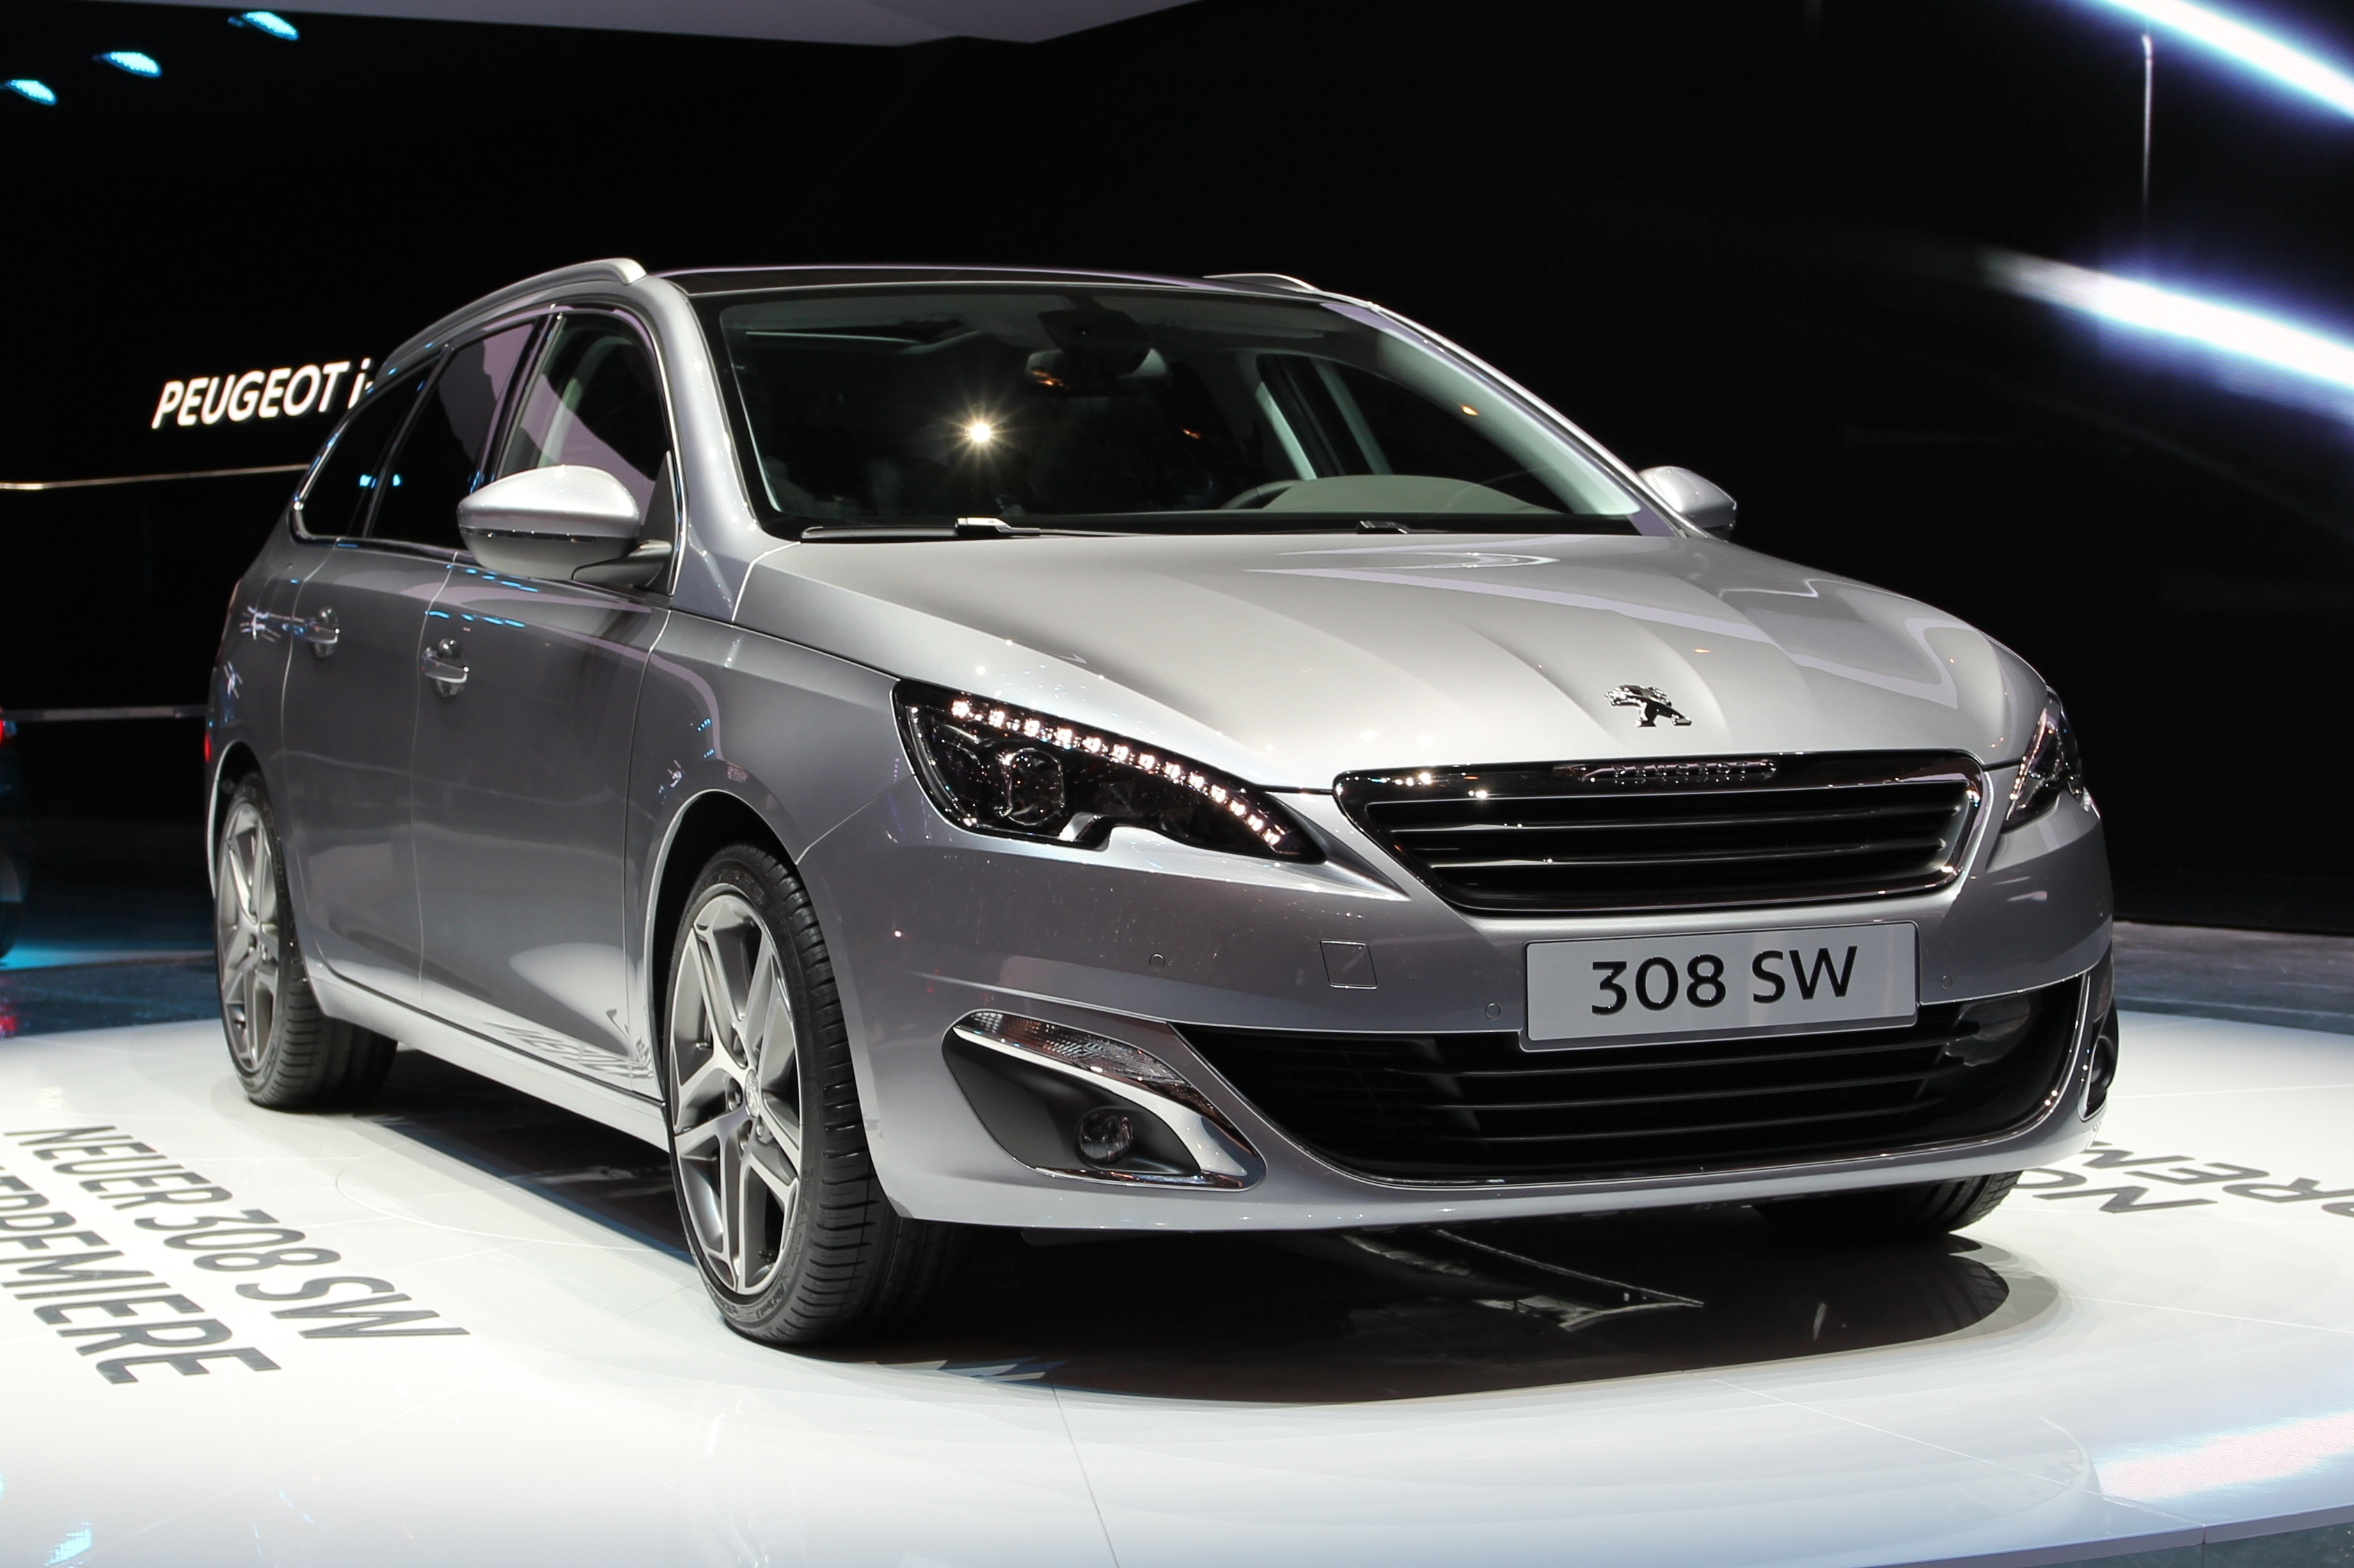 who offers the best battery for peugeot cars